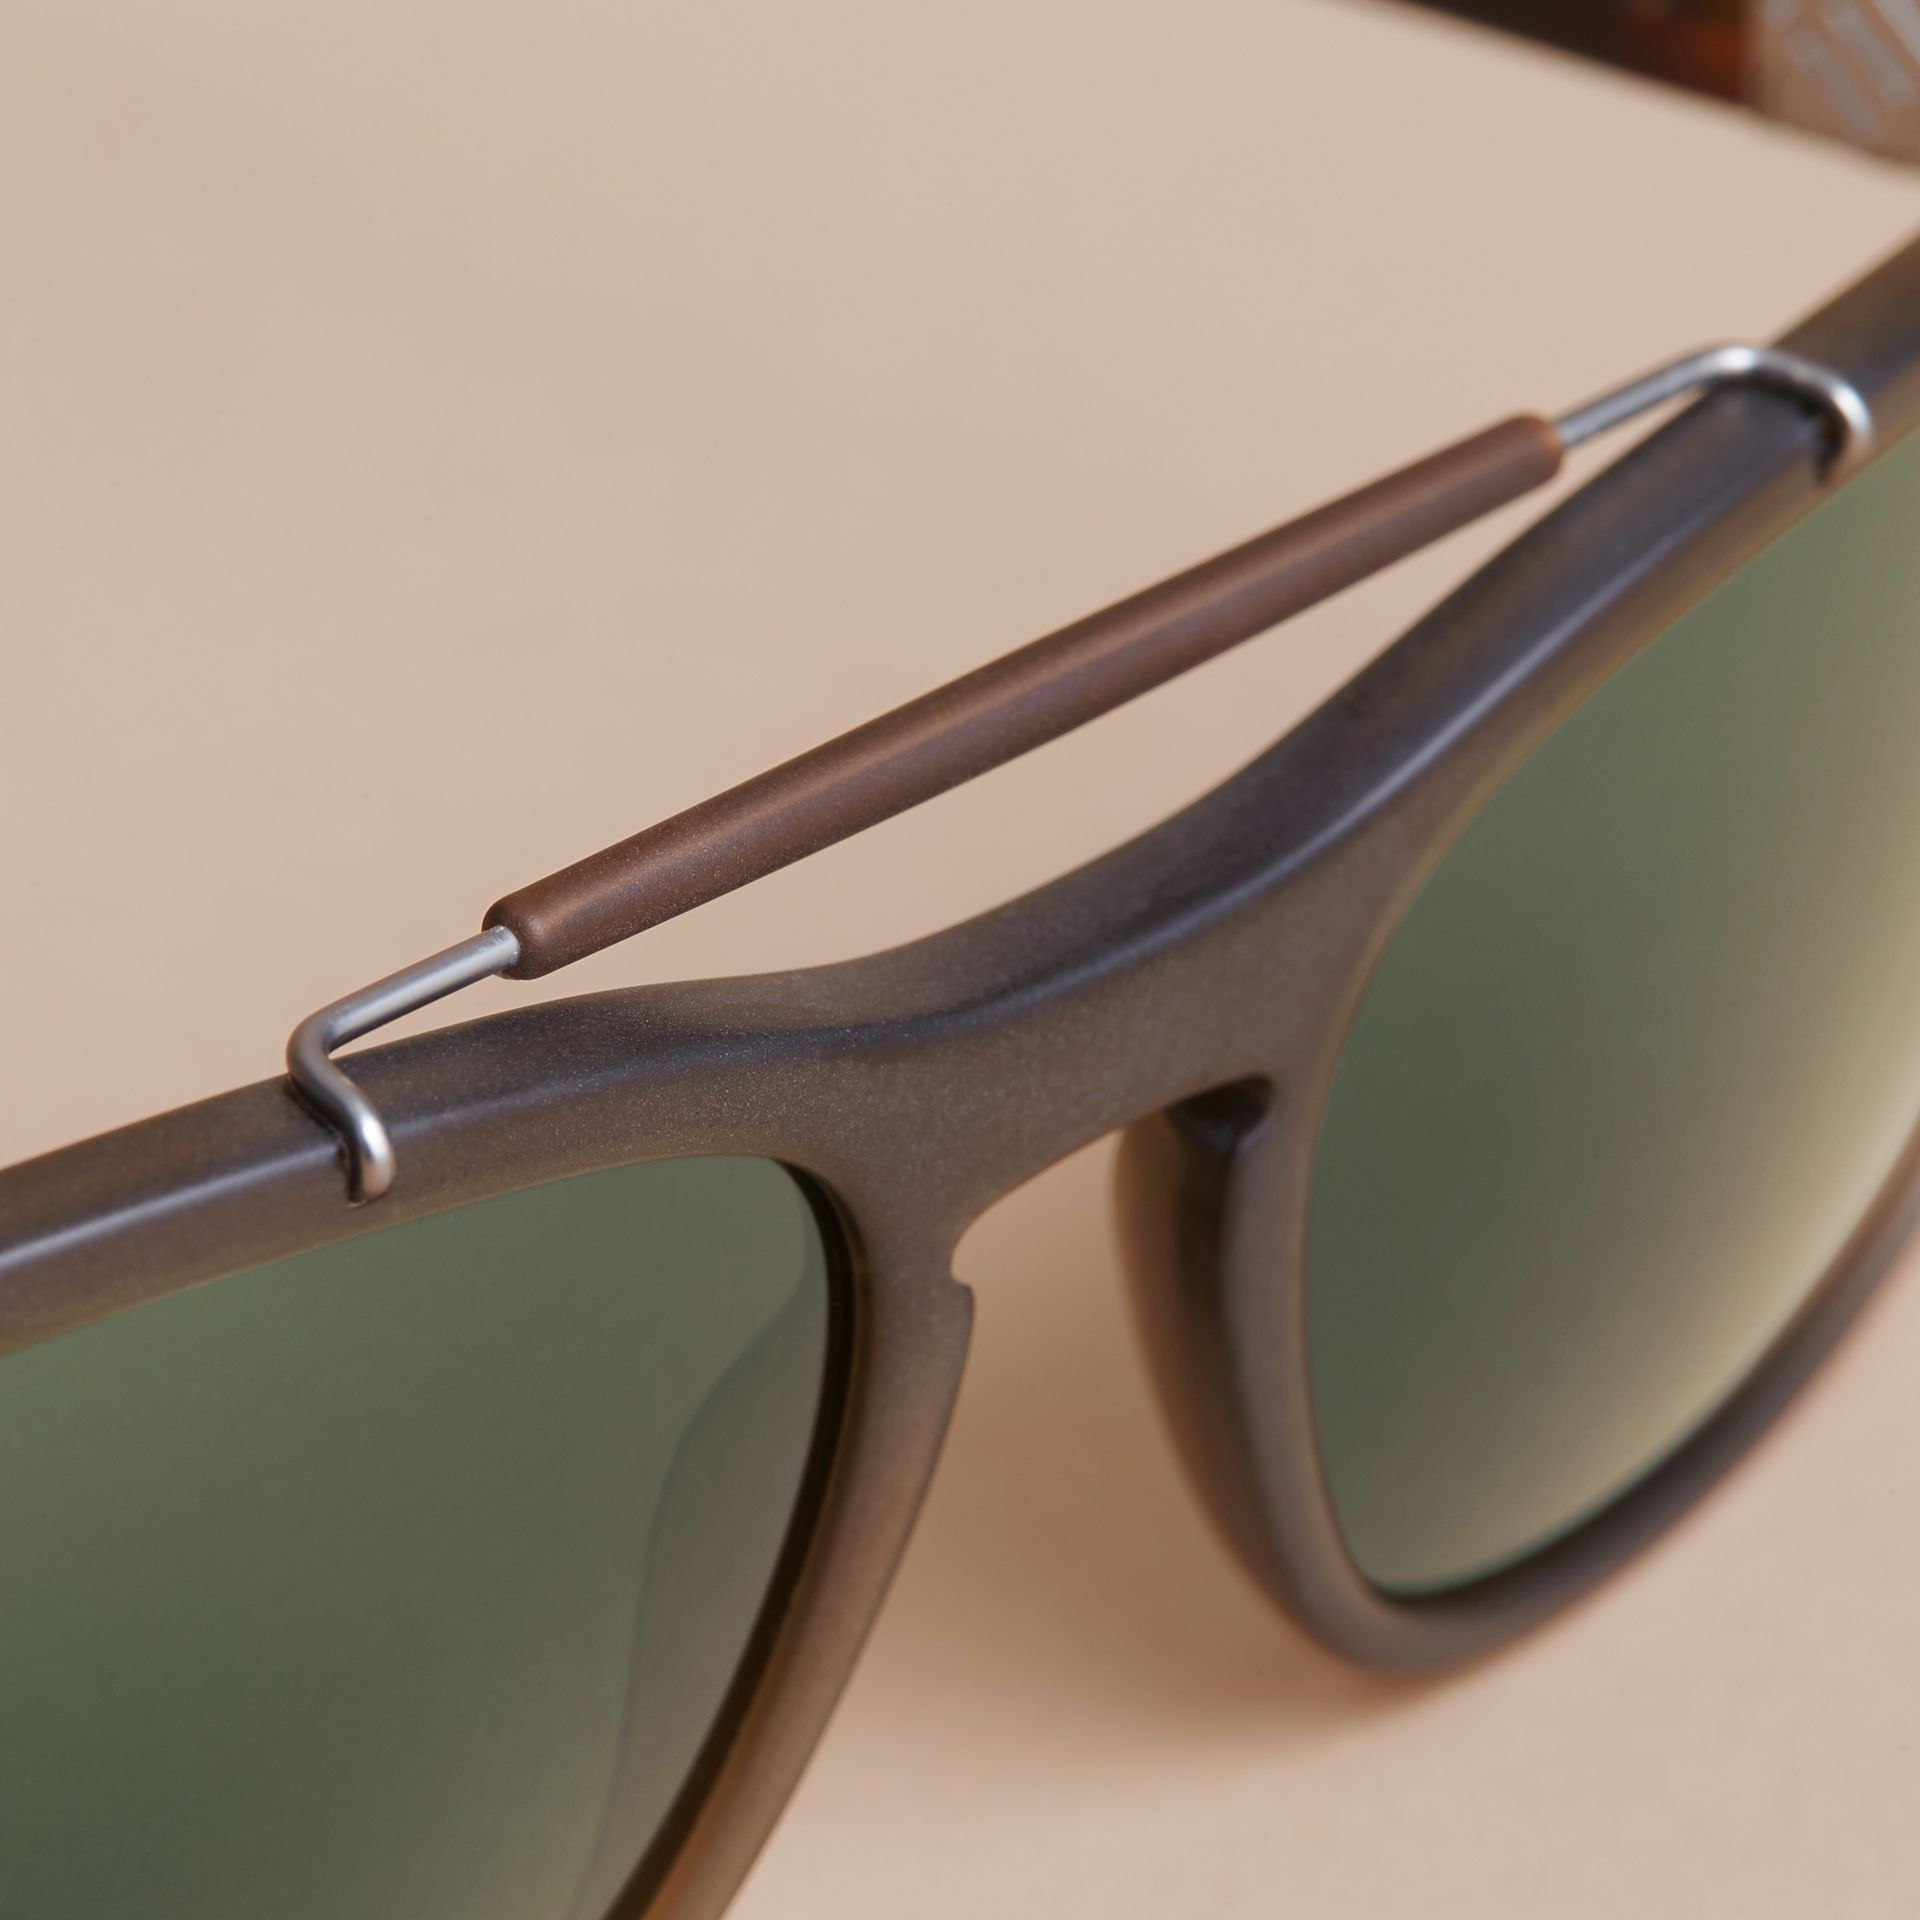 Top Bar Square Frame Sunglasses in Olive - Men | Burberry Hong Kong - gallery image 2